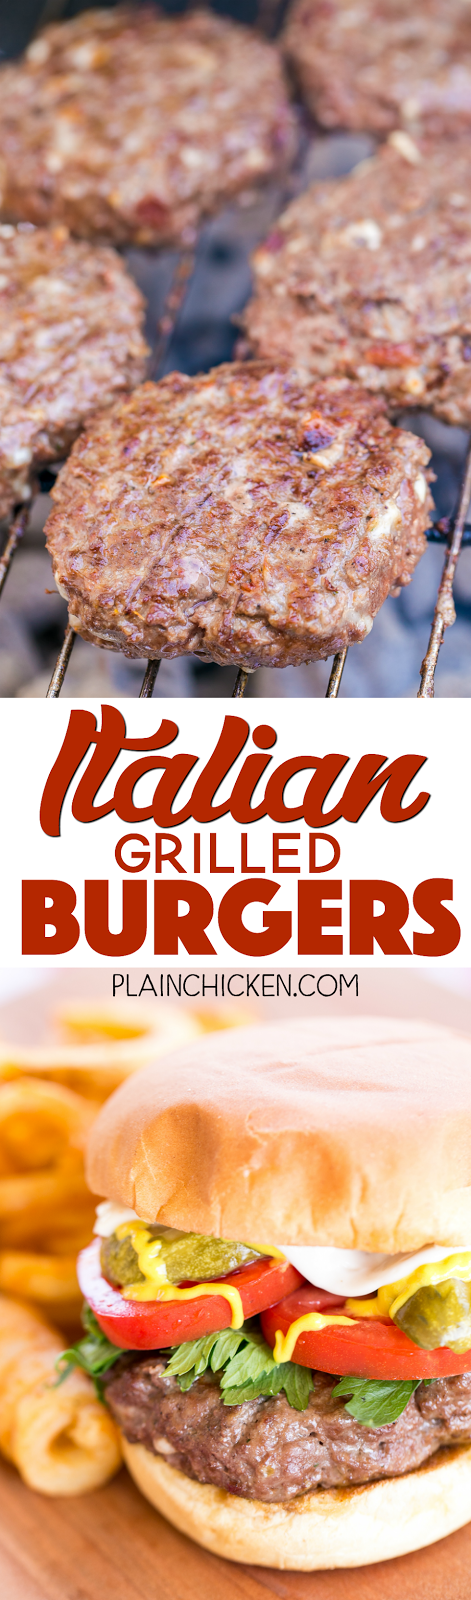 Italian Grilled Burgers - seriously delicious burger! Bursting with flavor!!! This makes a lot of burgers - great for a crowd and can freeze uncooked burgers for later. Hamburger meat, eggs, Italian salad dressing mix, bacon, bread crumbs and mozzarella cheese. We ate these two days in a row. SO GOOD!!! A great, quick and easy hamburger recipe!!